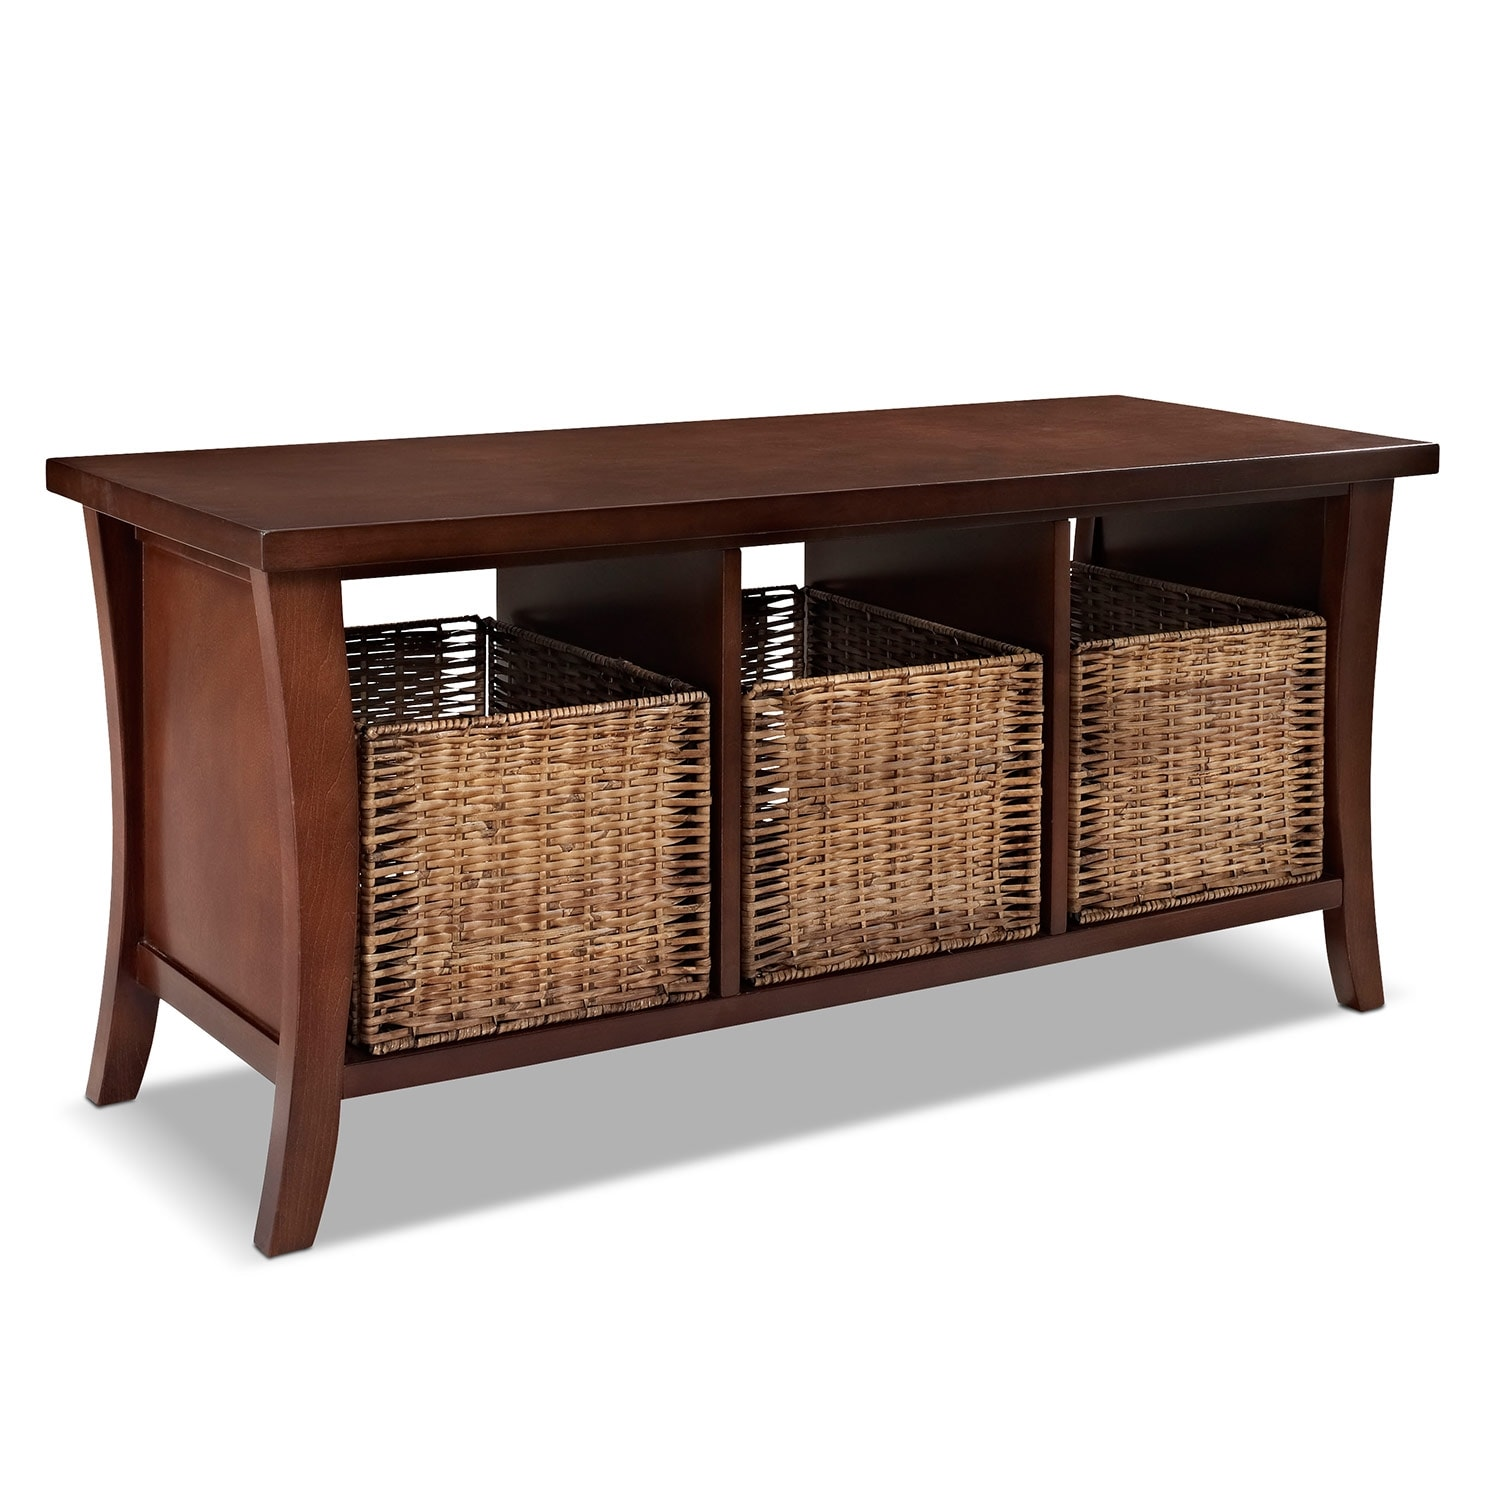 Accent and Occasional Furniture - Mae Mahogany Entryway Storage Bench